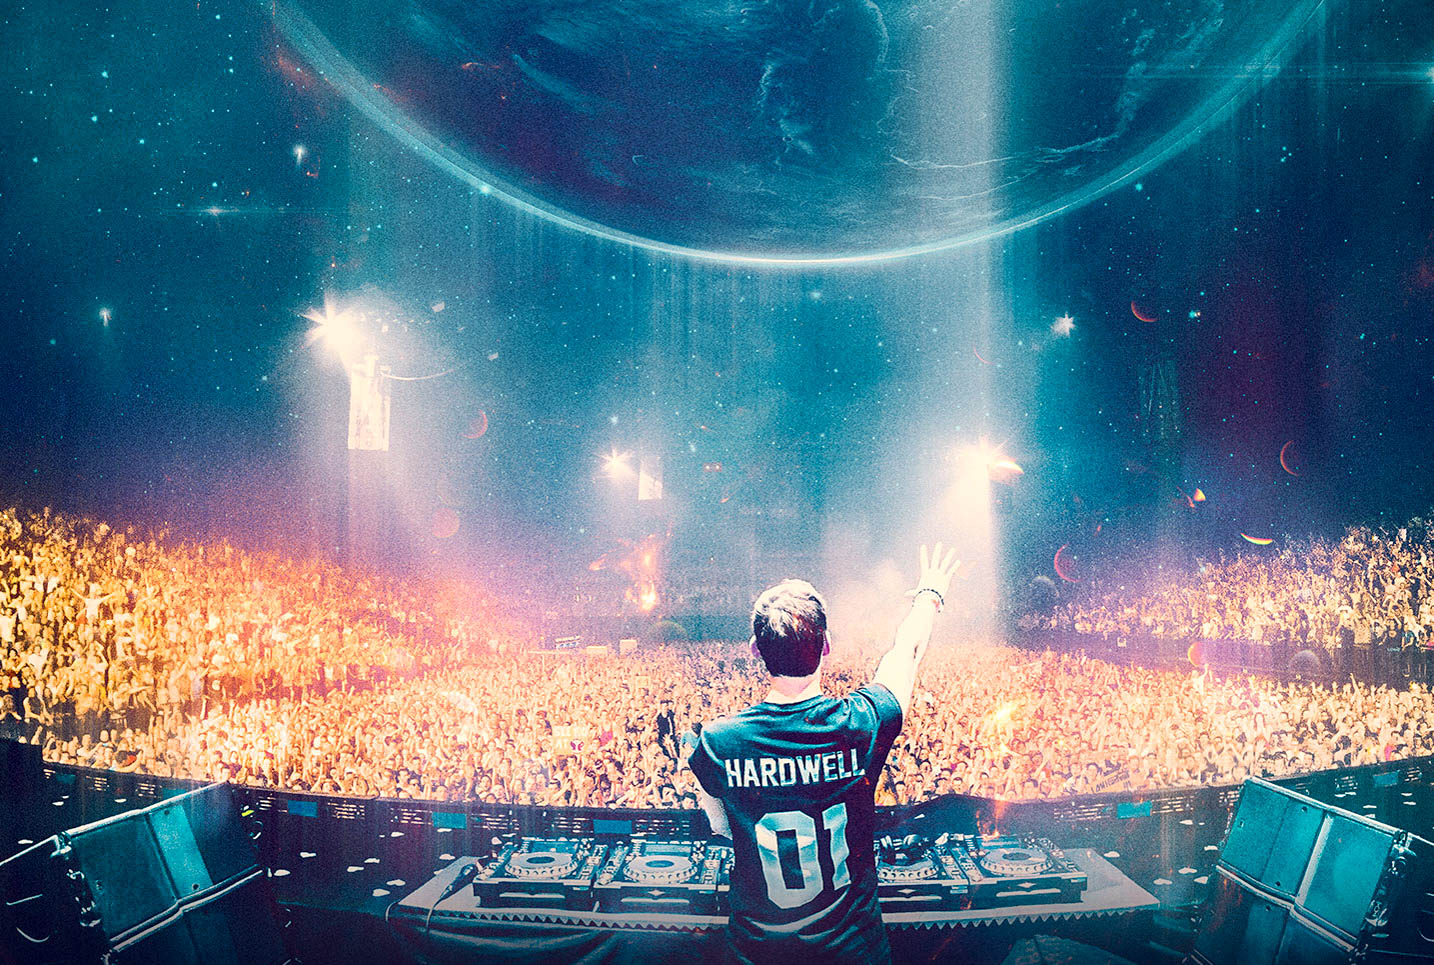 Hardwell Best Selected HD Wallpapers, Backgrounds In High